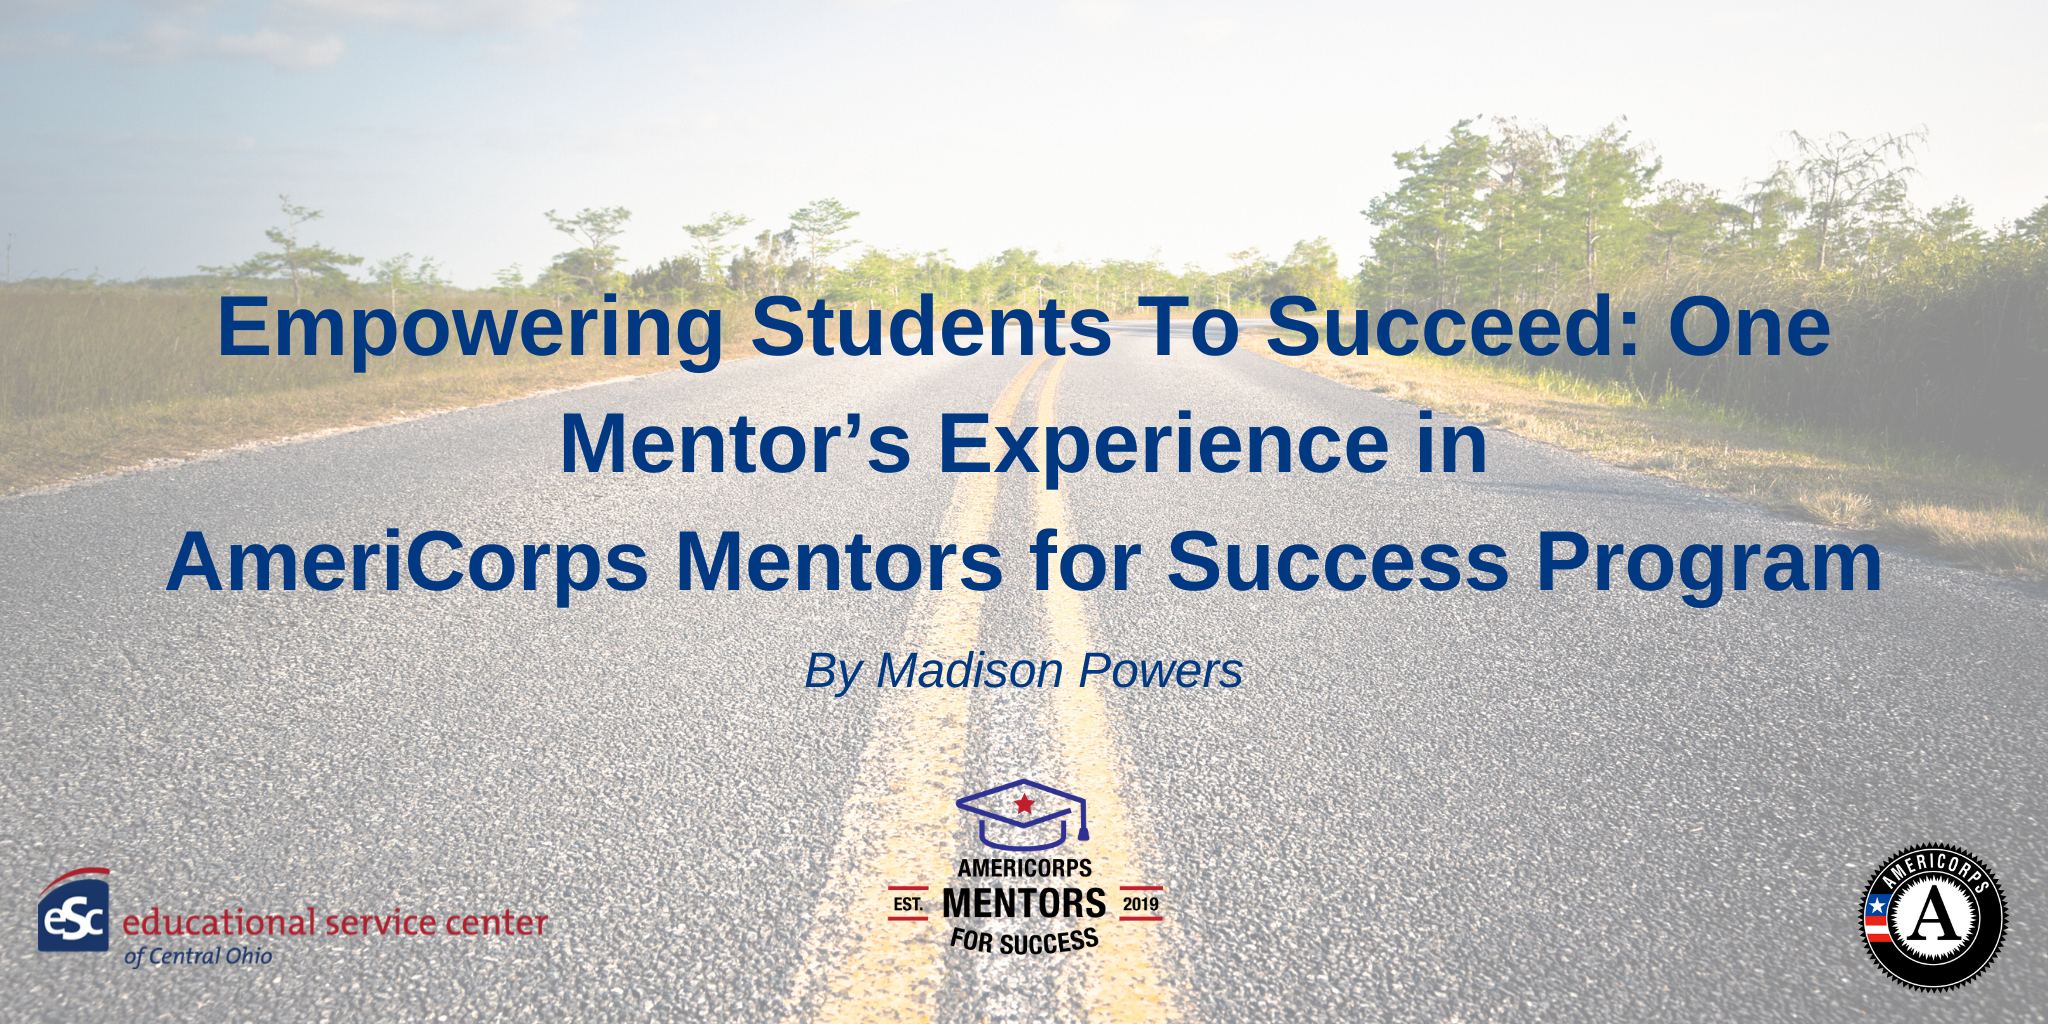 transparent road, Empowering Students To Succeed: One Mentor's Experience in AmeriCorps Mentors for Success Program in blue font